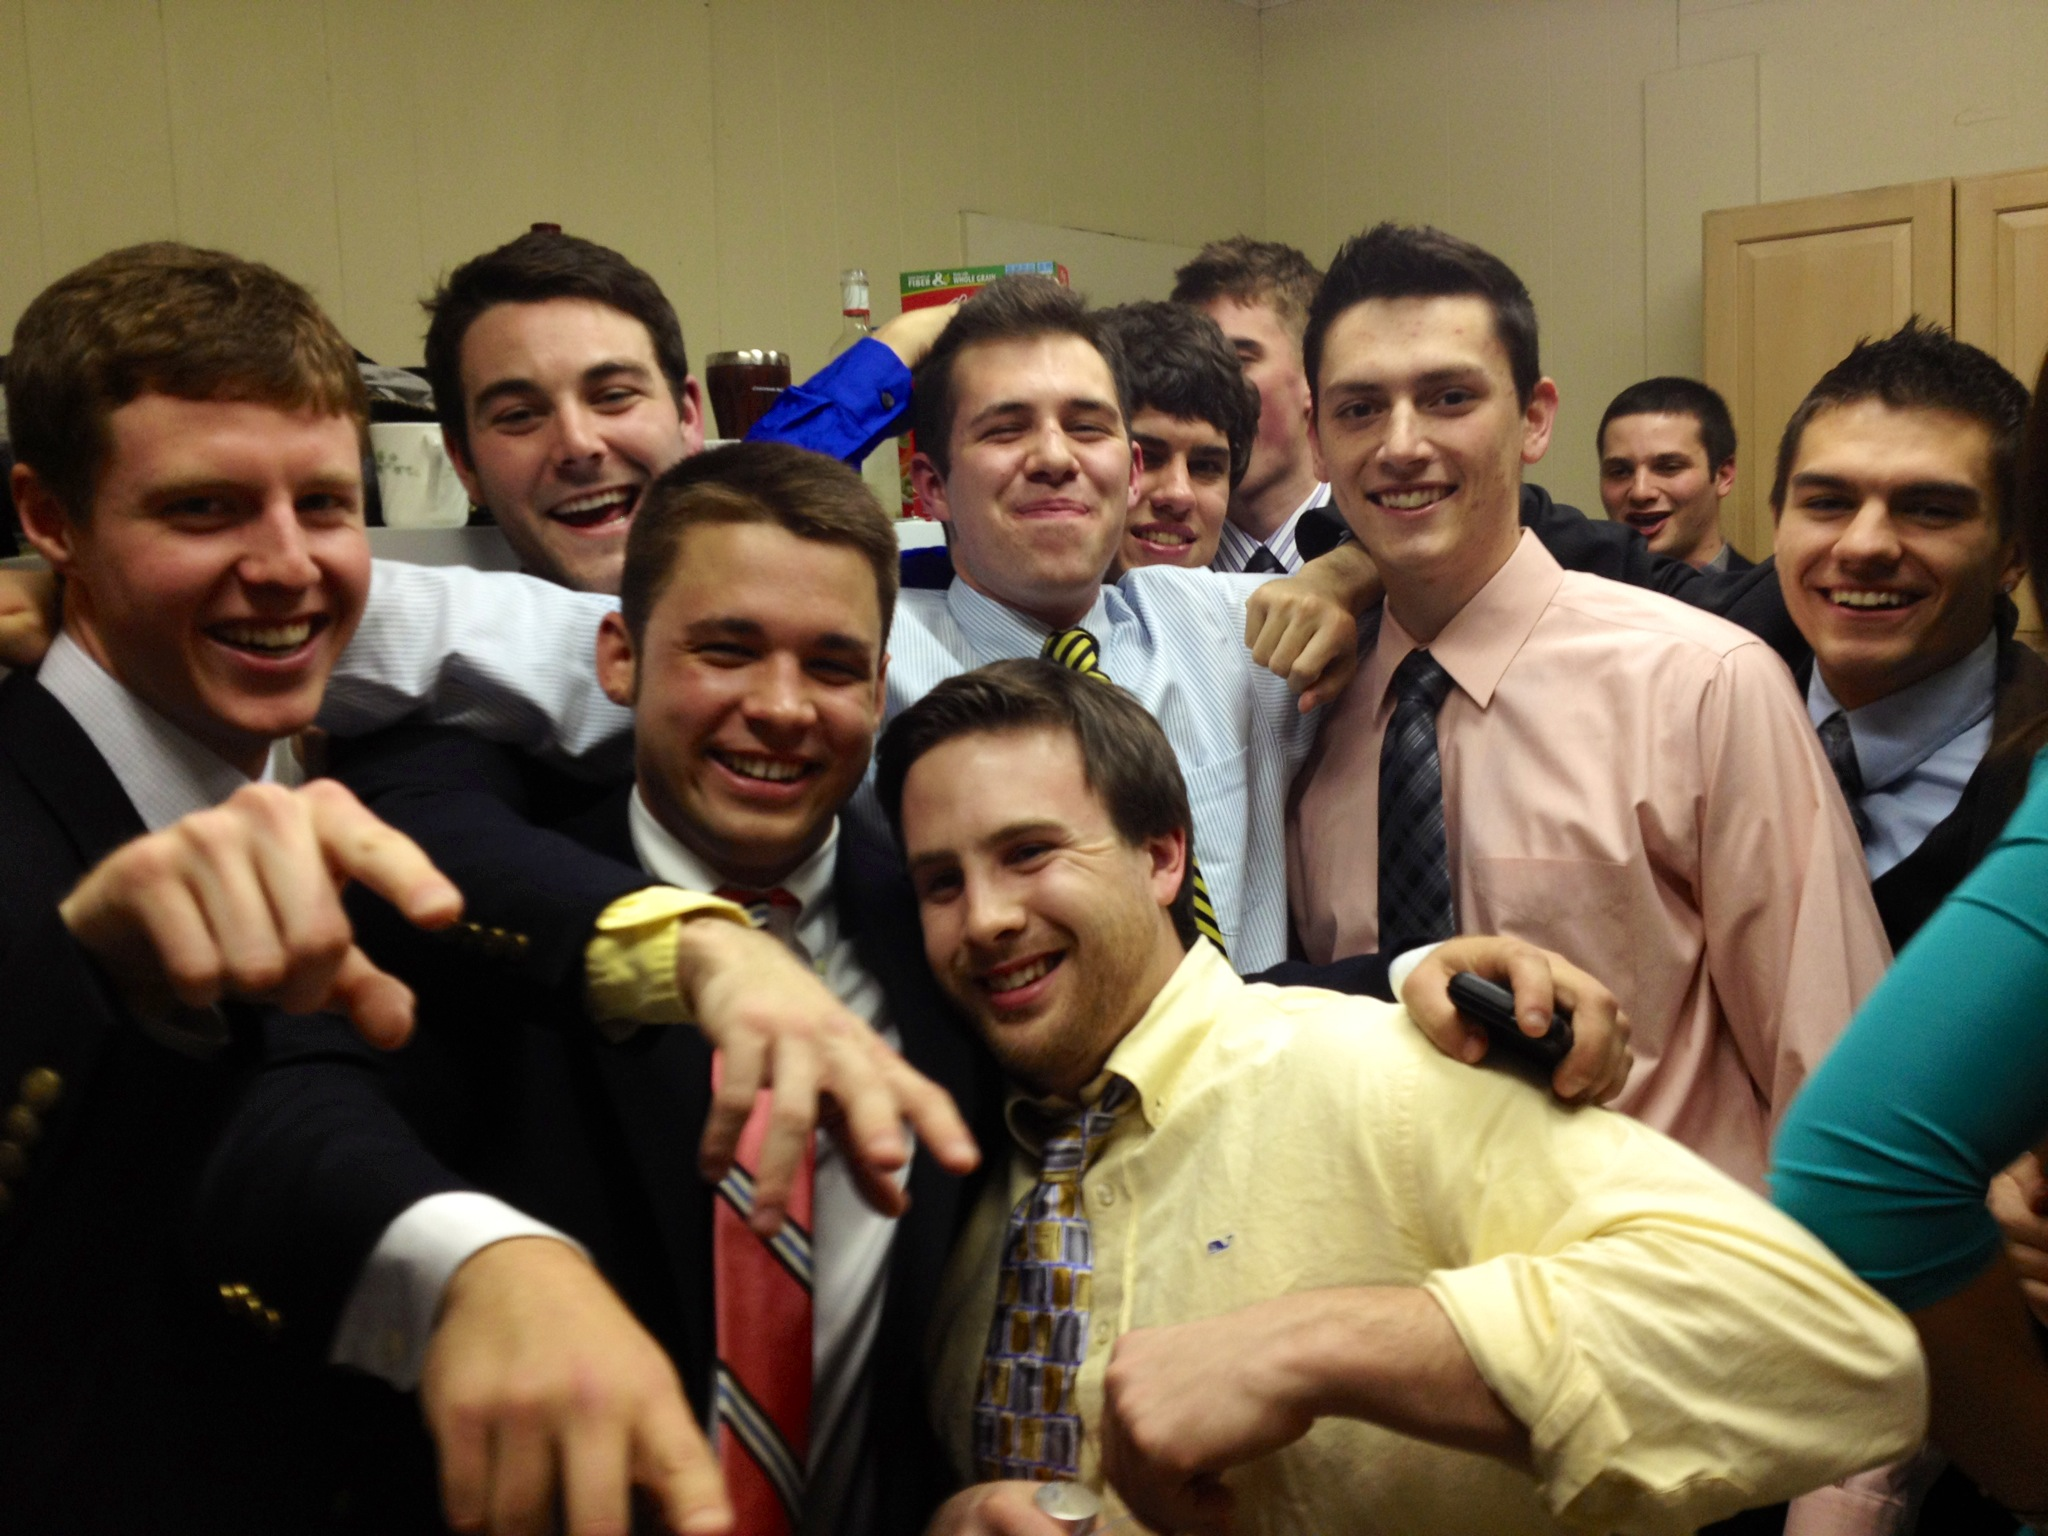 ATΩbrothers celebrating their newly initiated brothers!